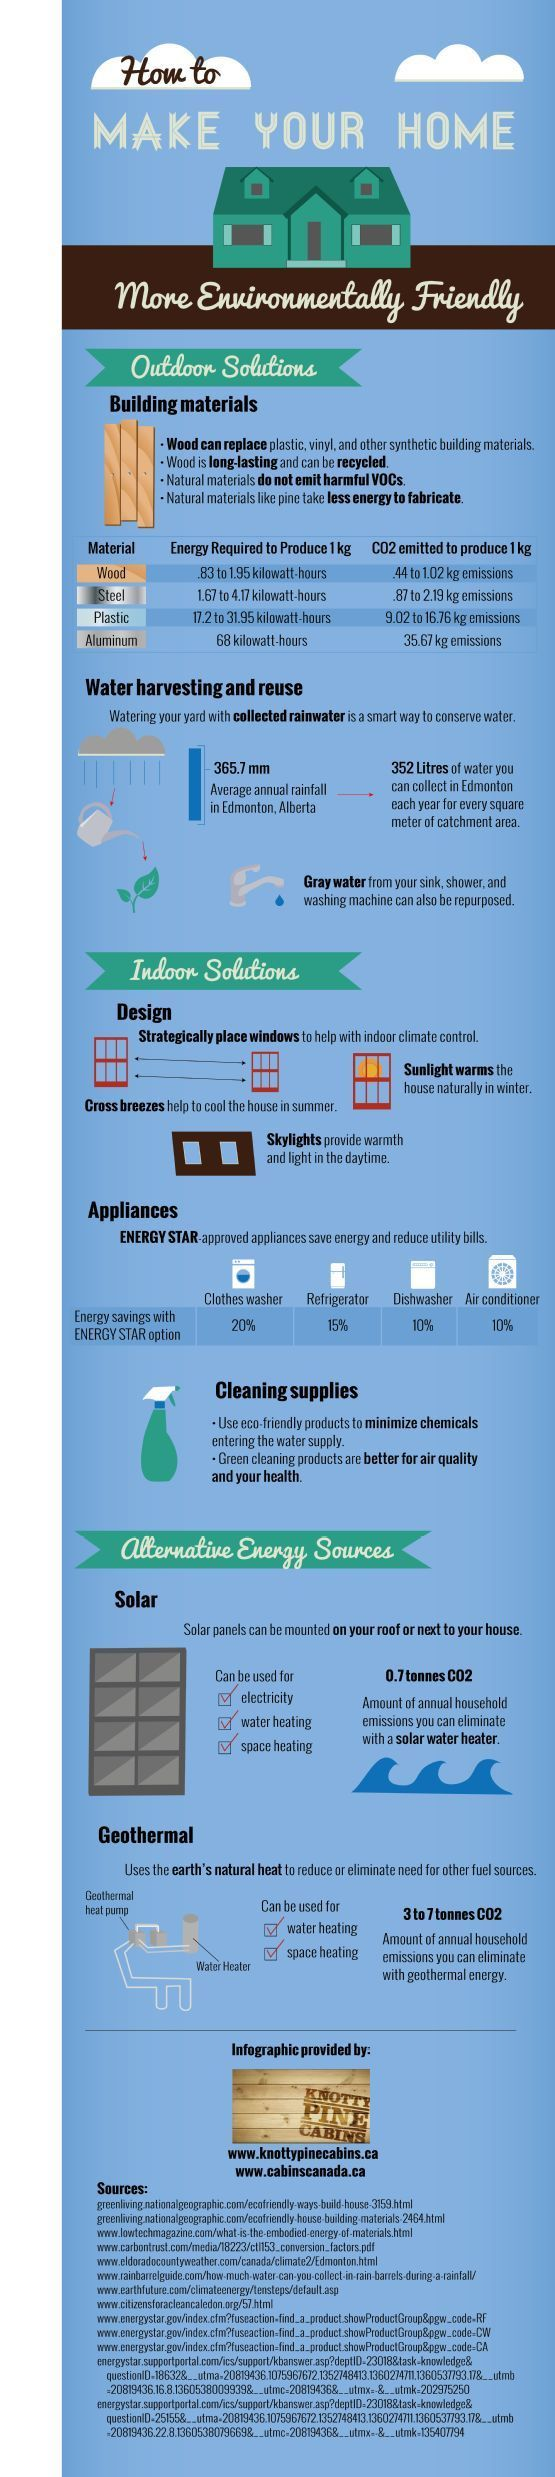 How to Make Your Home Environmentally Friendly Infographic: